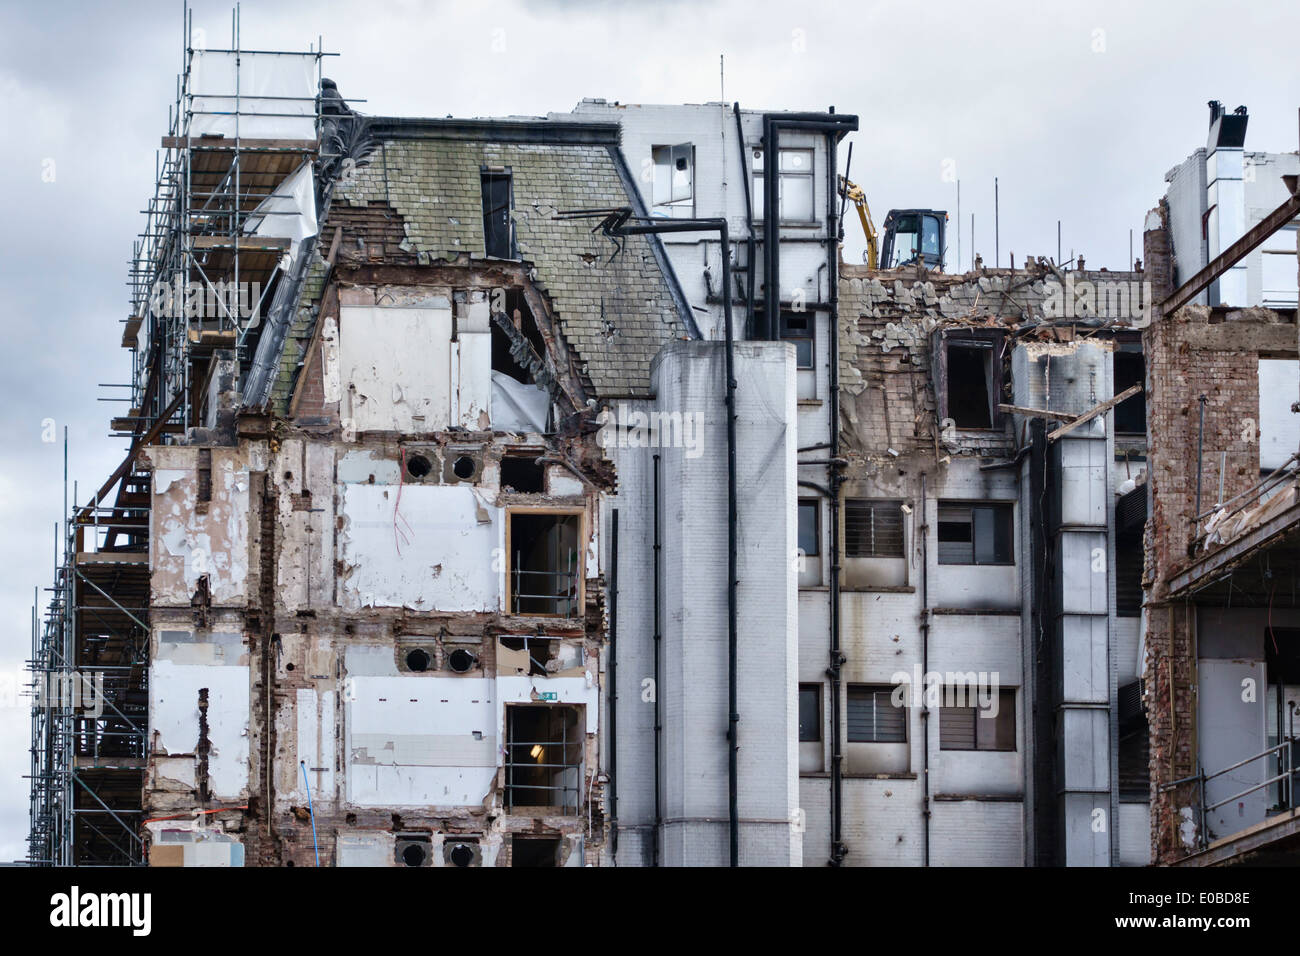 Demolition and redevelopment taking place in London's West End - Stock Image